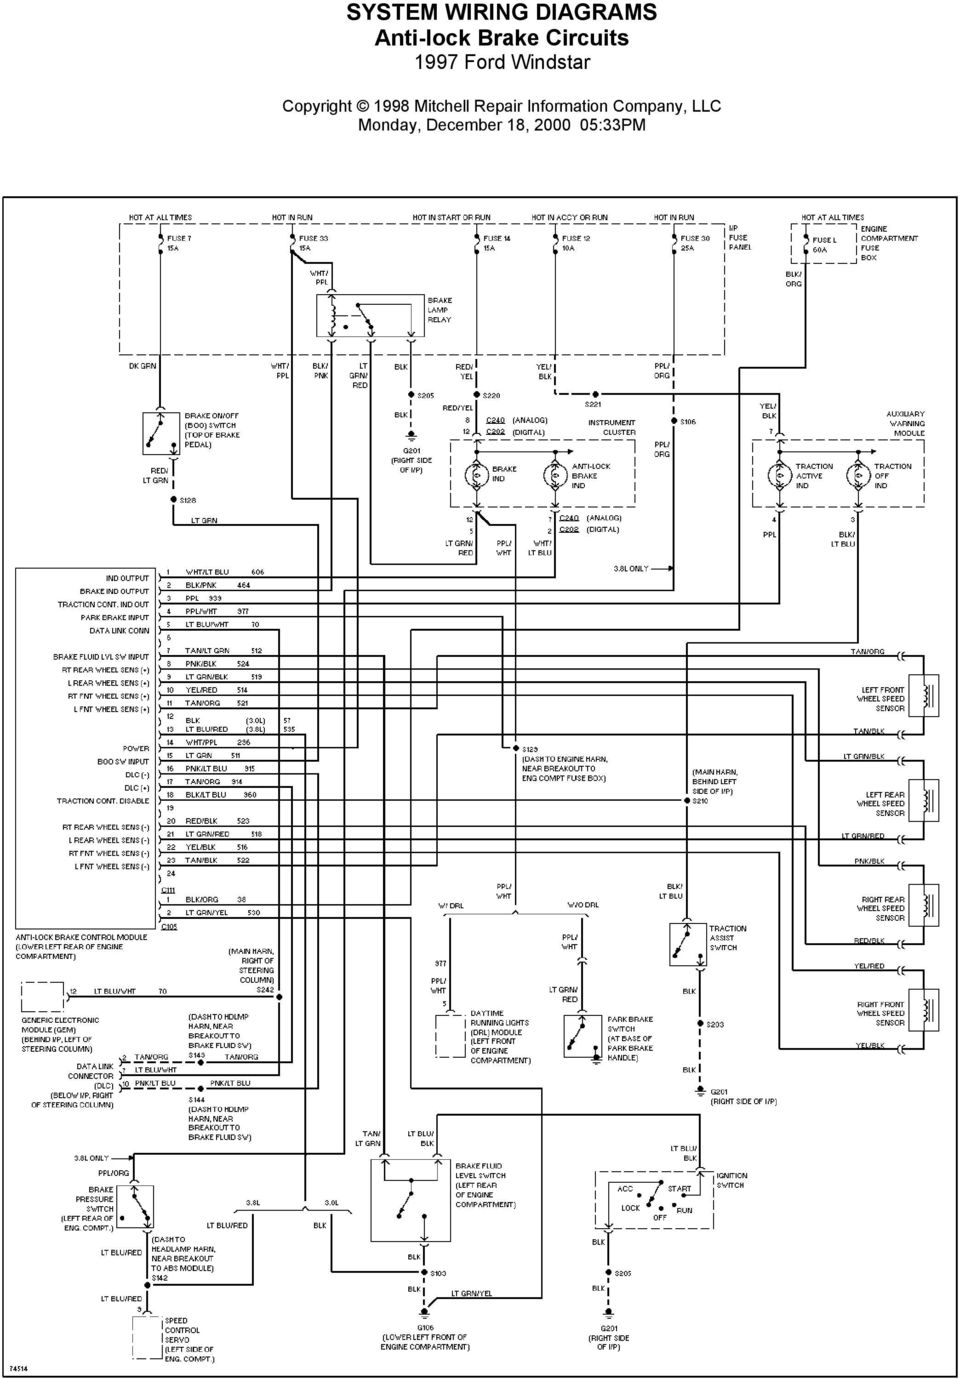 2000 Ford Windstar Wiring Diagram